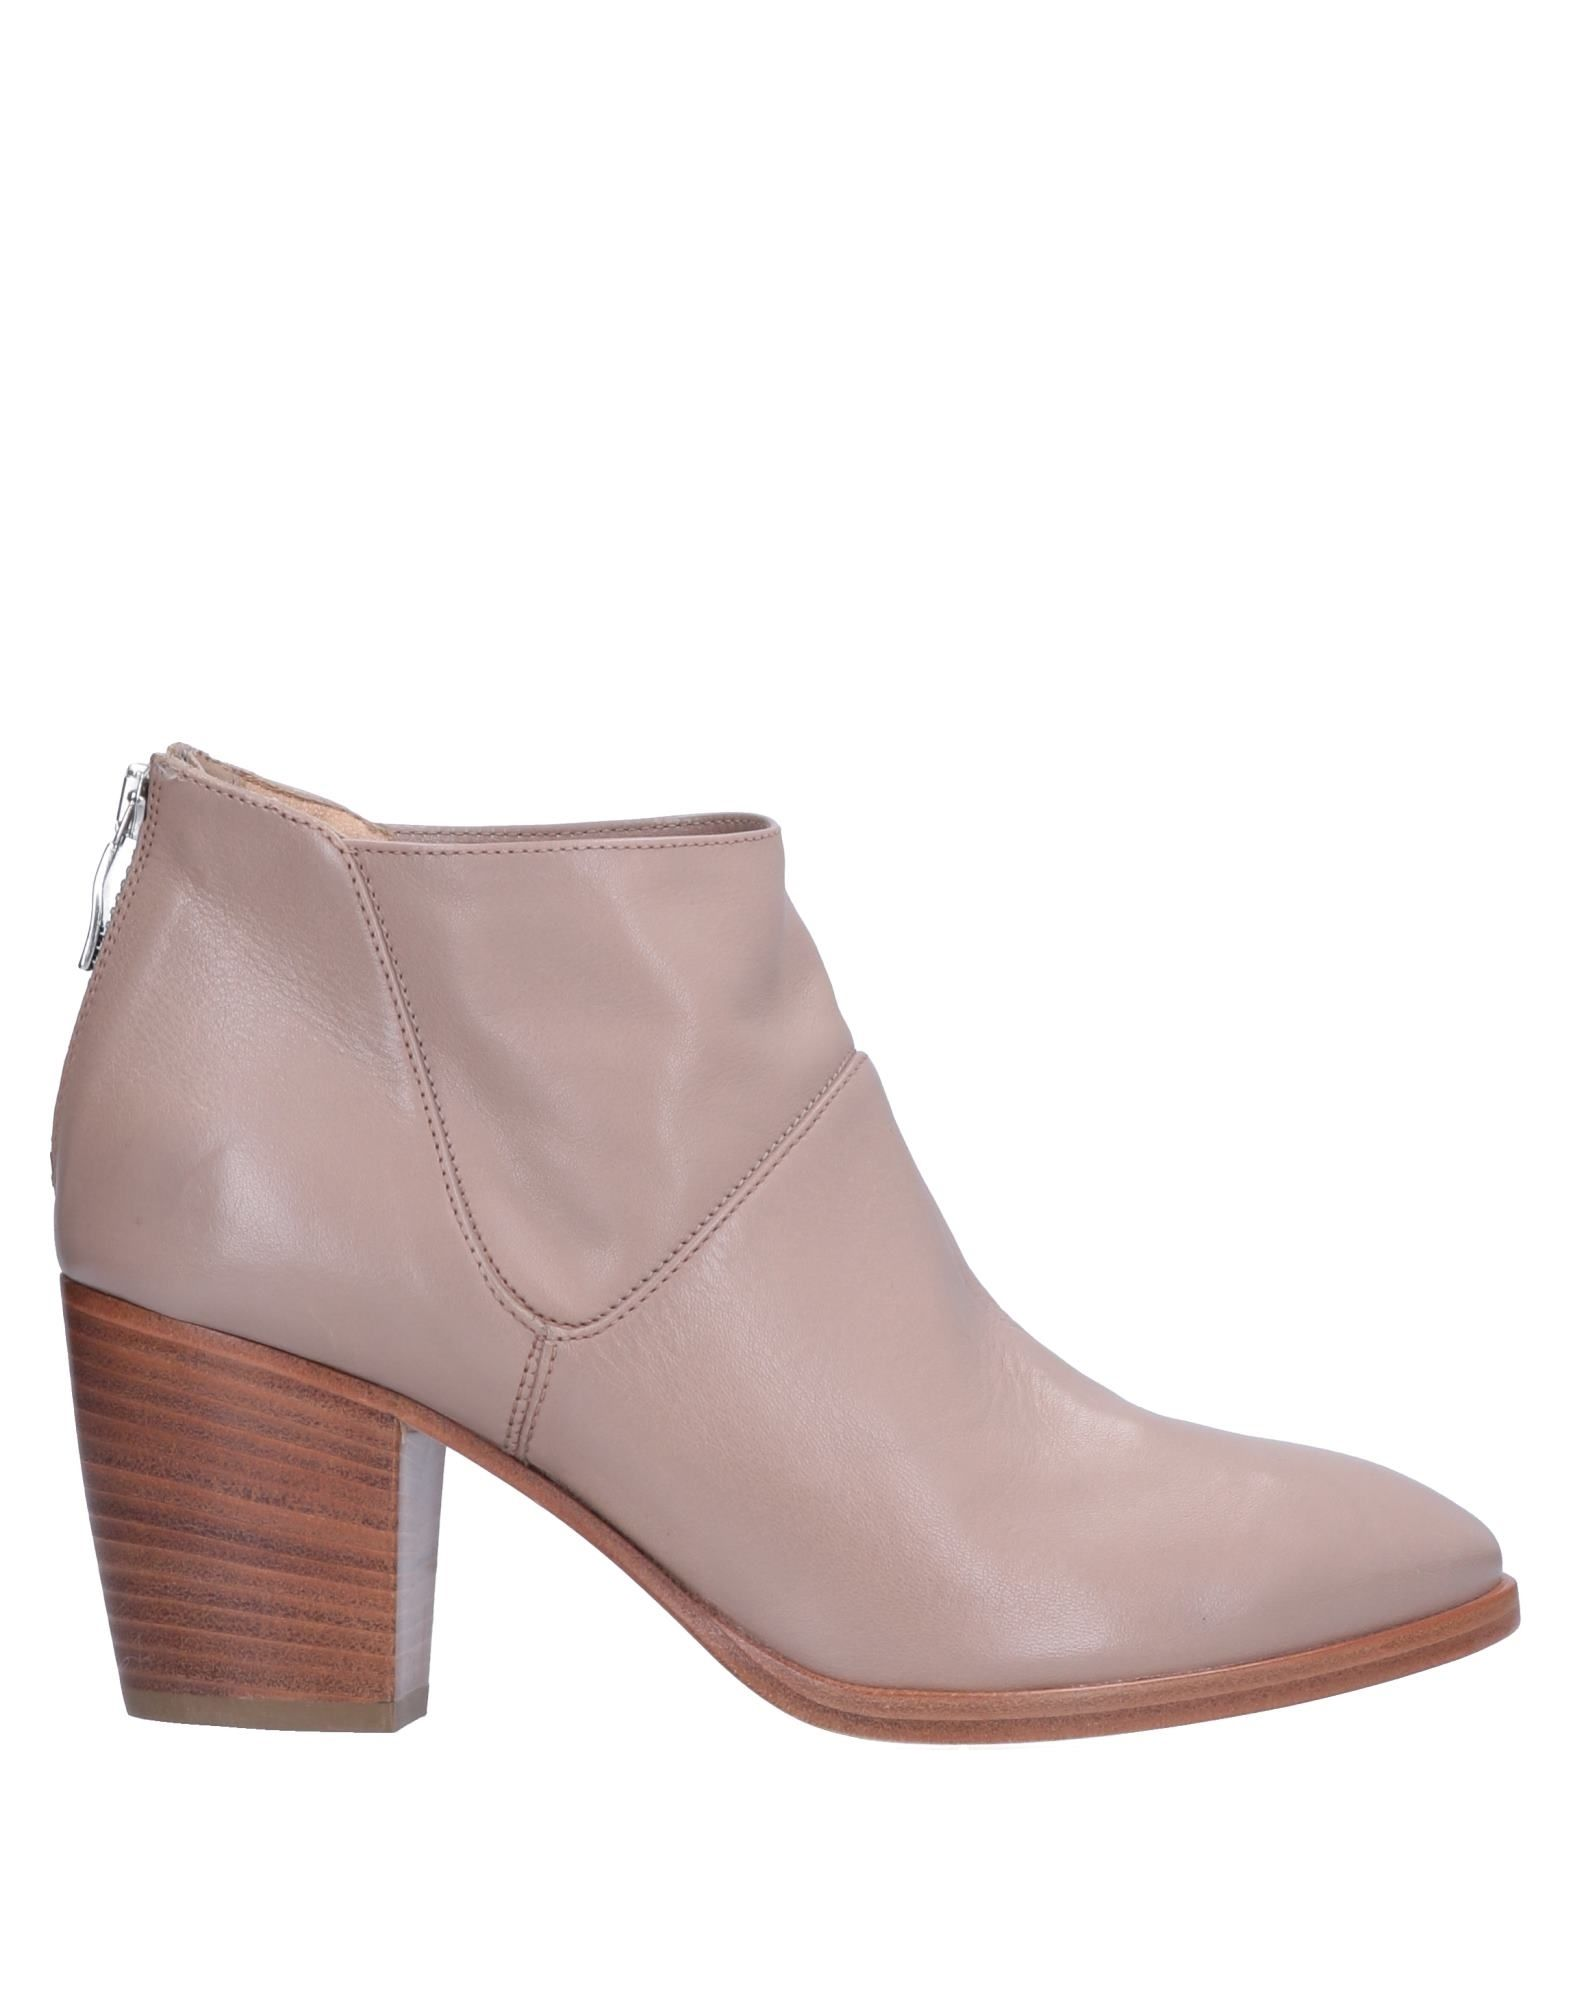 Janet & Janet Ankle Boot - Women Boots Janet & Janet Ankle Boots Women online on  United Kingdom - 11550173QR 9a3be1